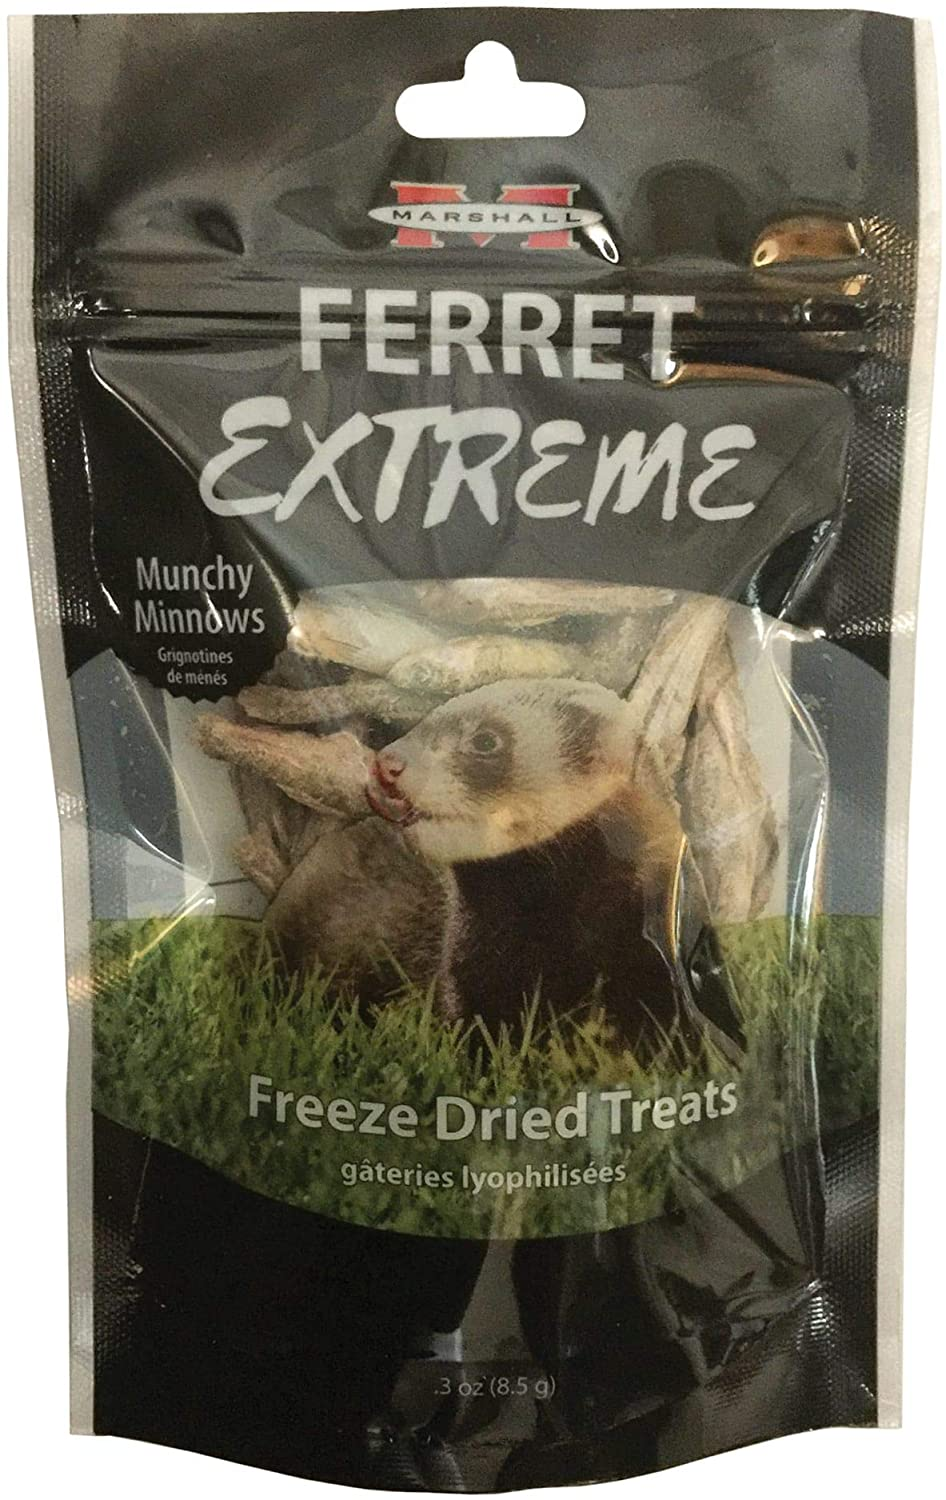 Marshall Ferret Extreme Freeze Dried Munchy Minnows Flavored Treats